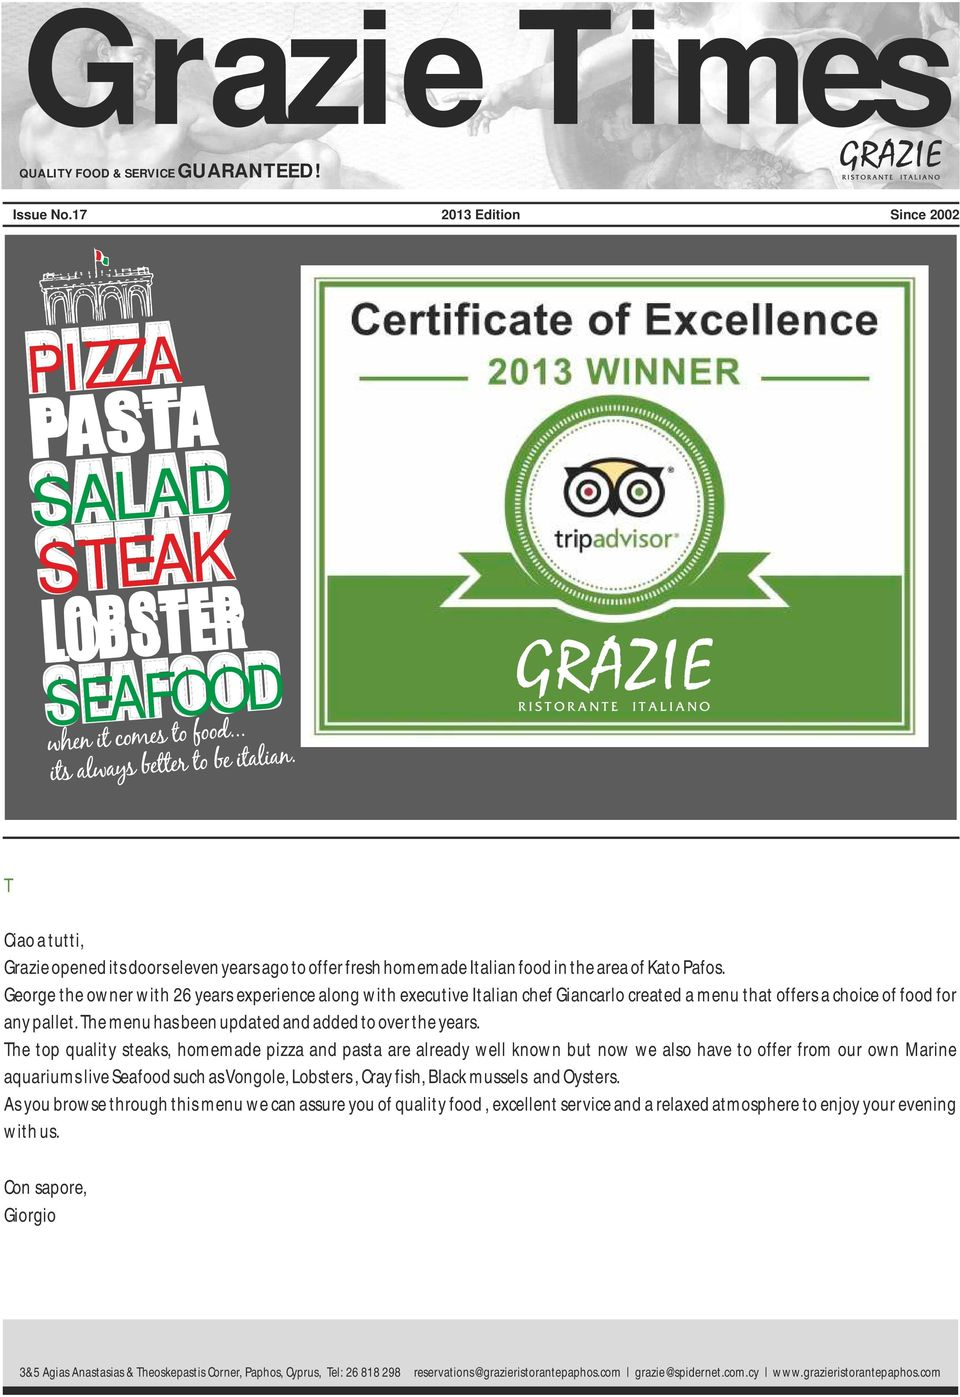 George the owner with 26 years experience along with executive Italian chef Giancarlo created a menu that offers a choice of food for any pallet. The menu has been updated and added to over the years.